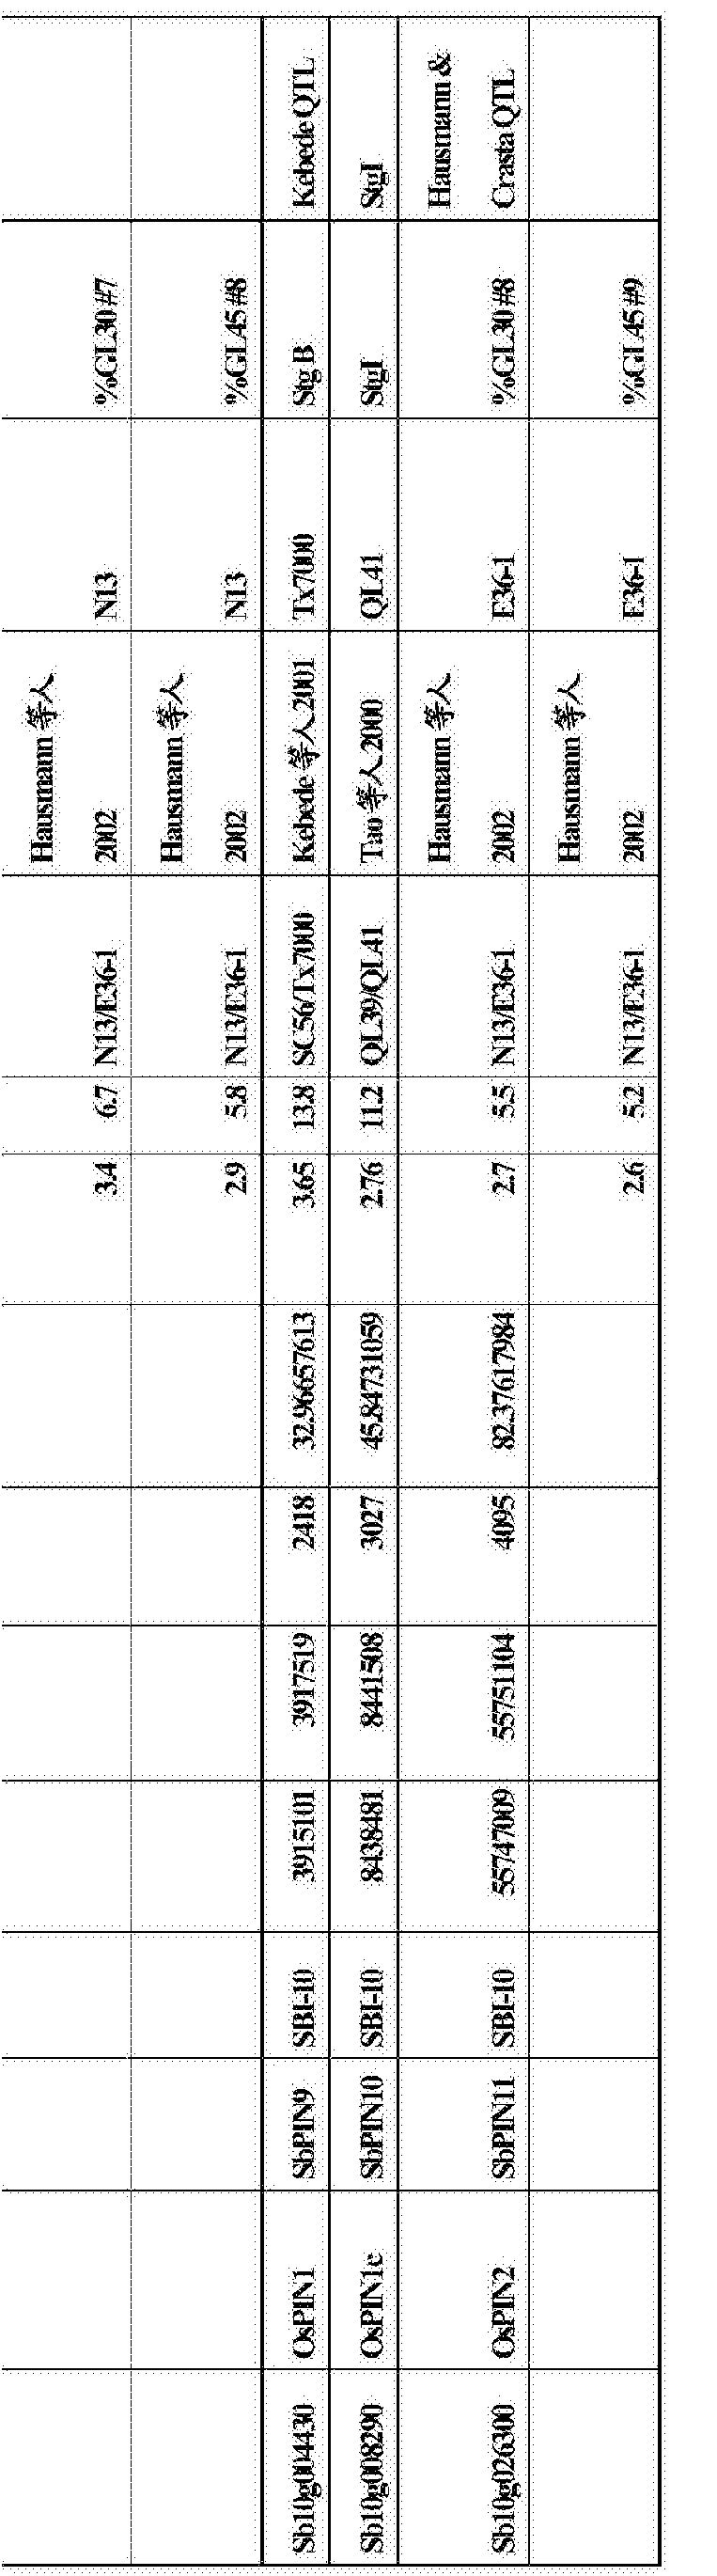 CN108624618A - 耐干旱植物- Google Patents